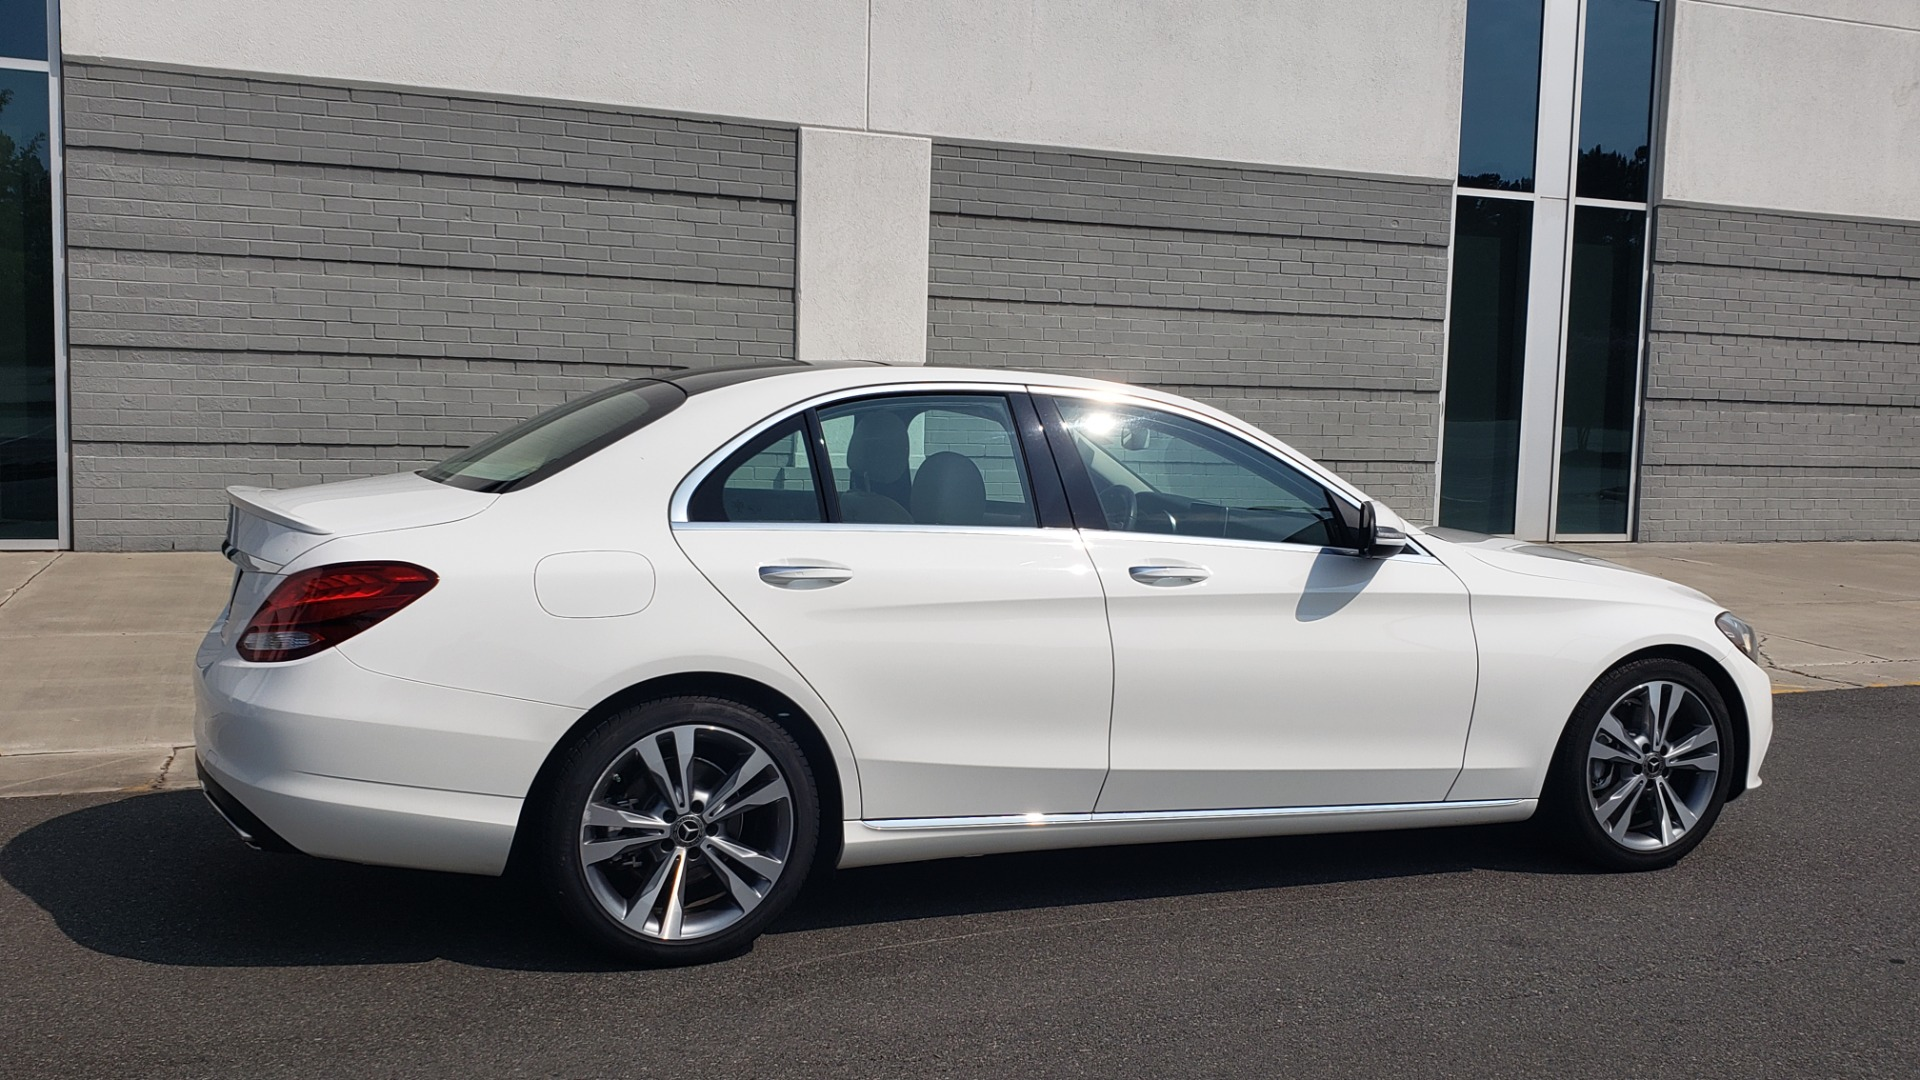 Used 2018 Mercedes-Benz C-CLASS C 300 PREMIUM / KEYLESS-GO / APPLE / PANO-ROOF / REARVIEW for sale $28,295 at Formula Imports in Charlotte NC 28227 8